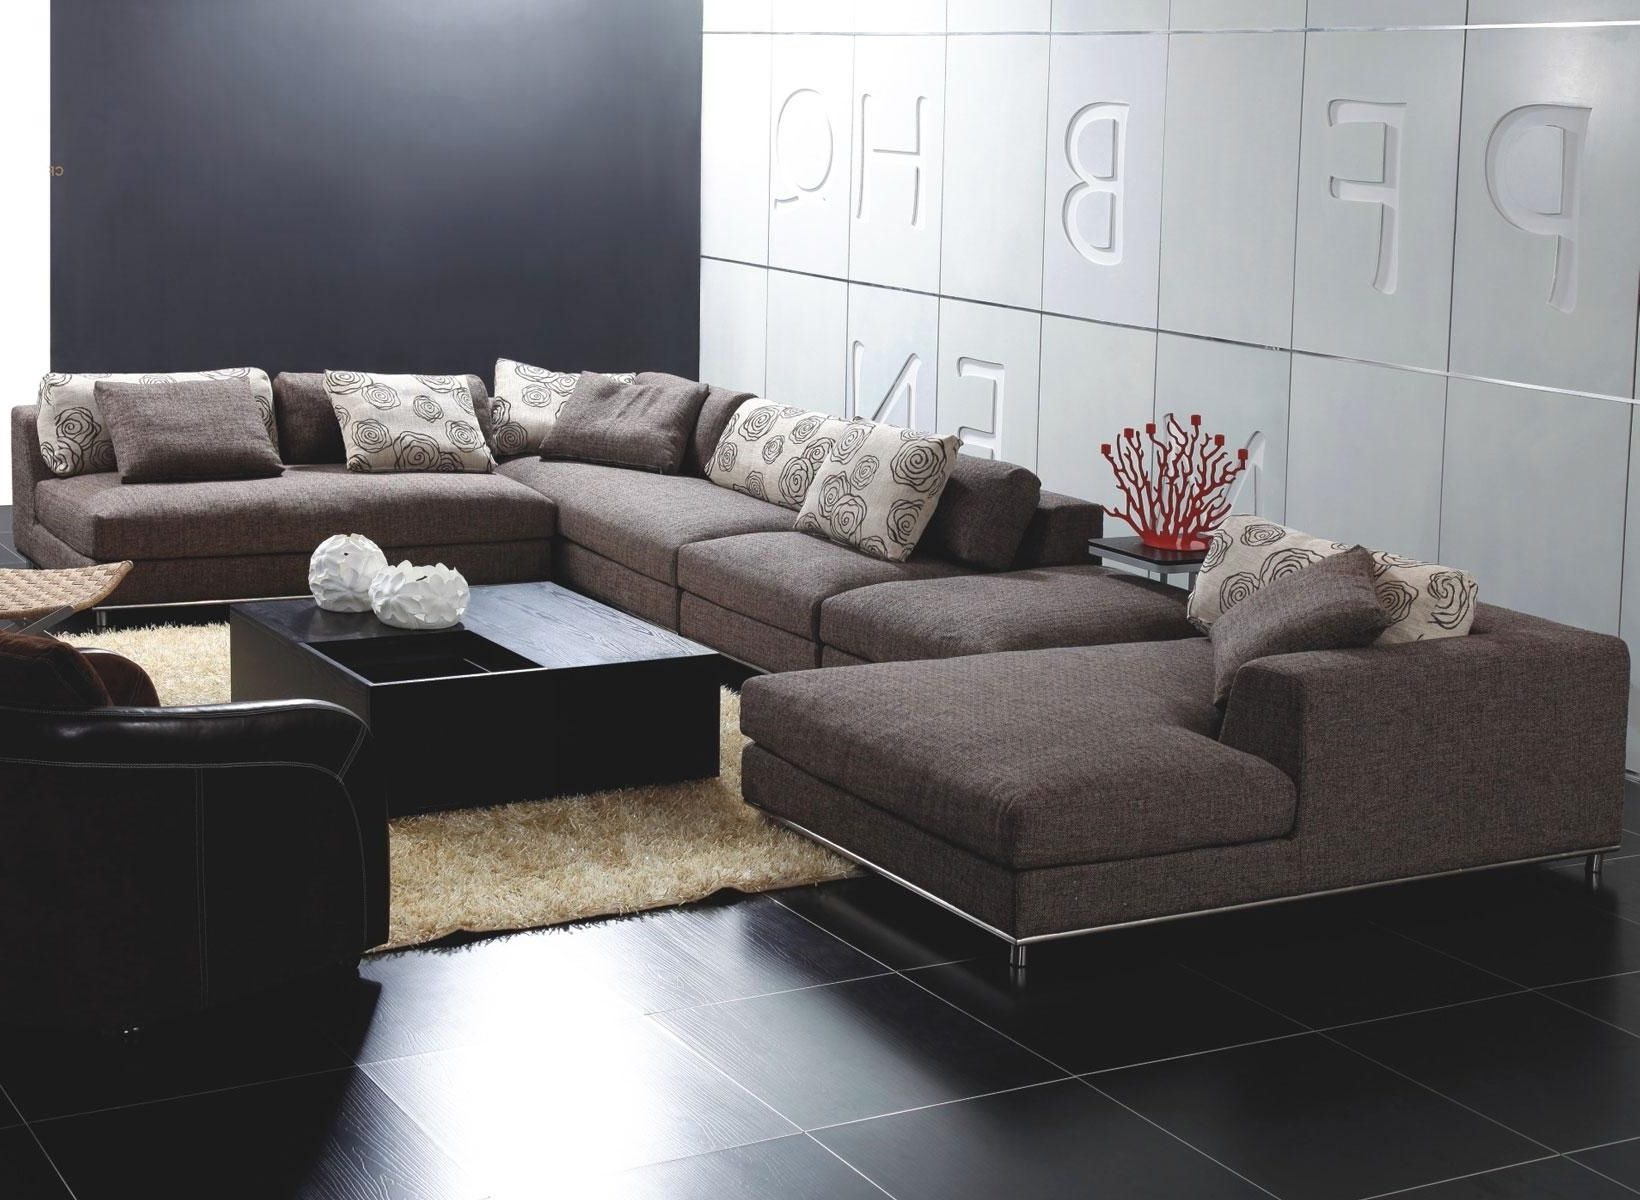 Current Sectional Sofas At Calgary Regarding Depiction Of Best Sectional Sofa For The Money That Will Stun You (View 7 of 15)